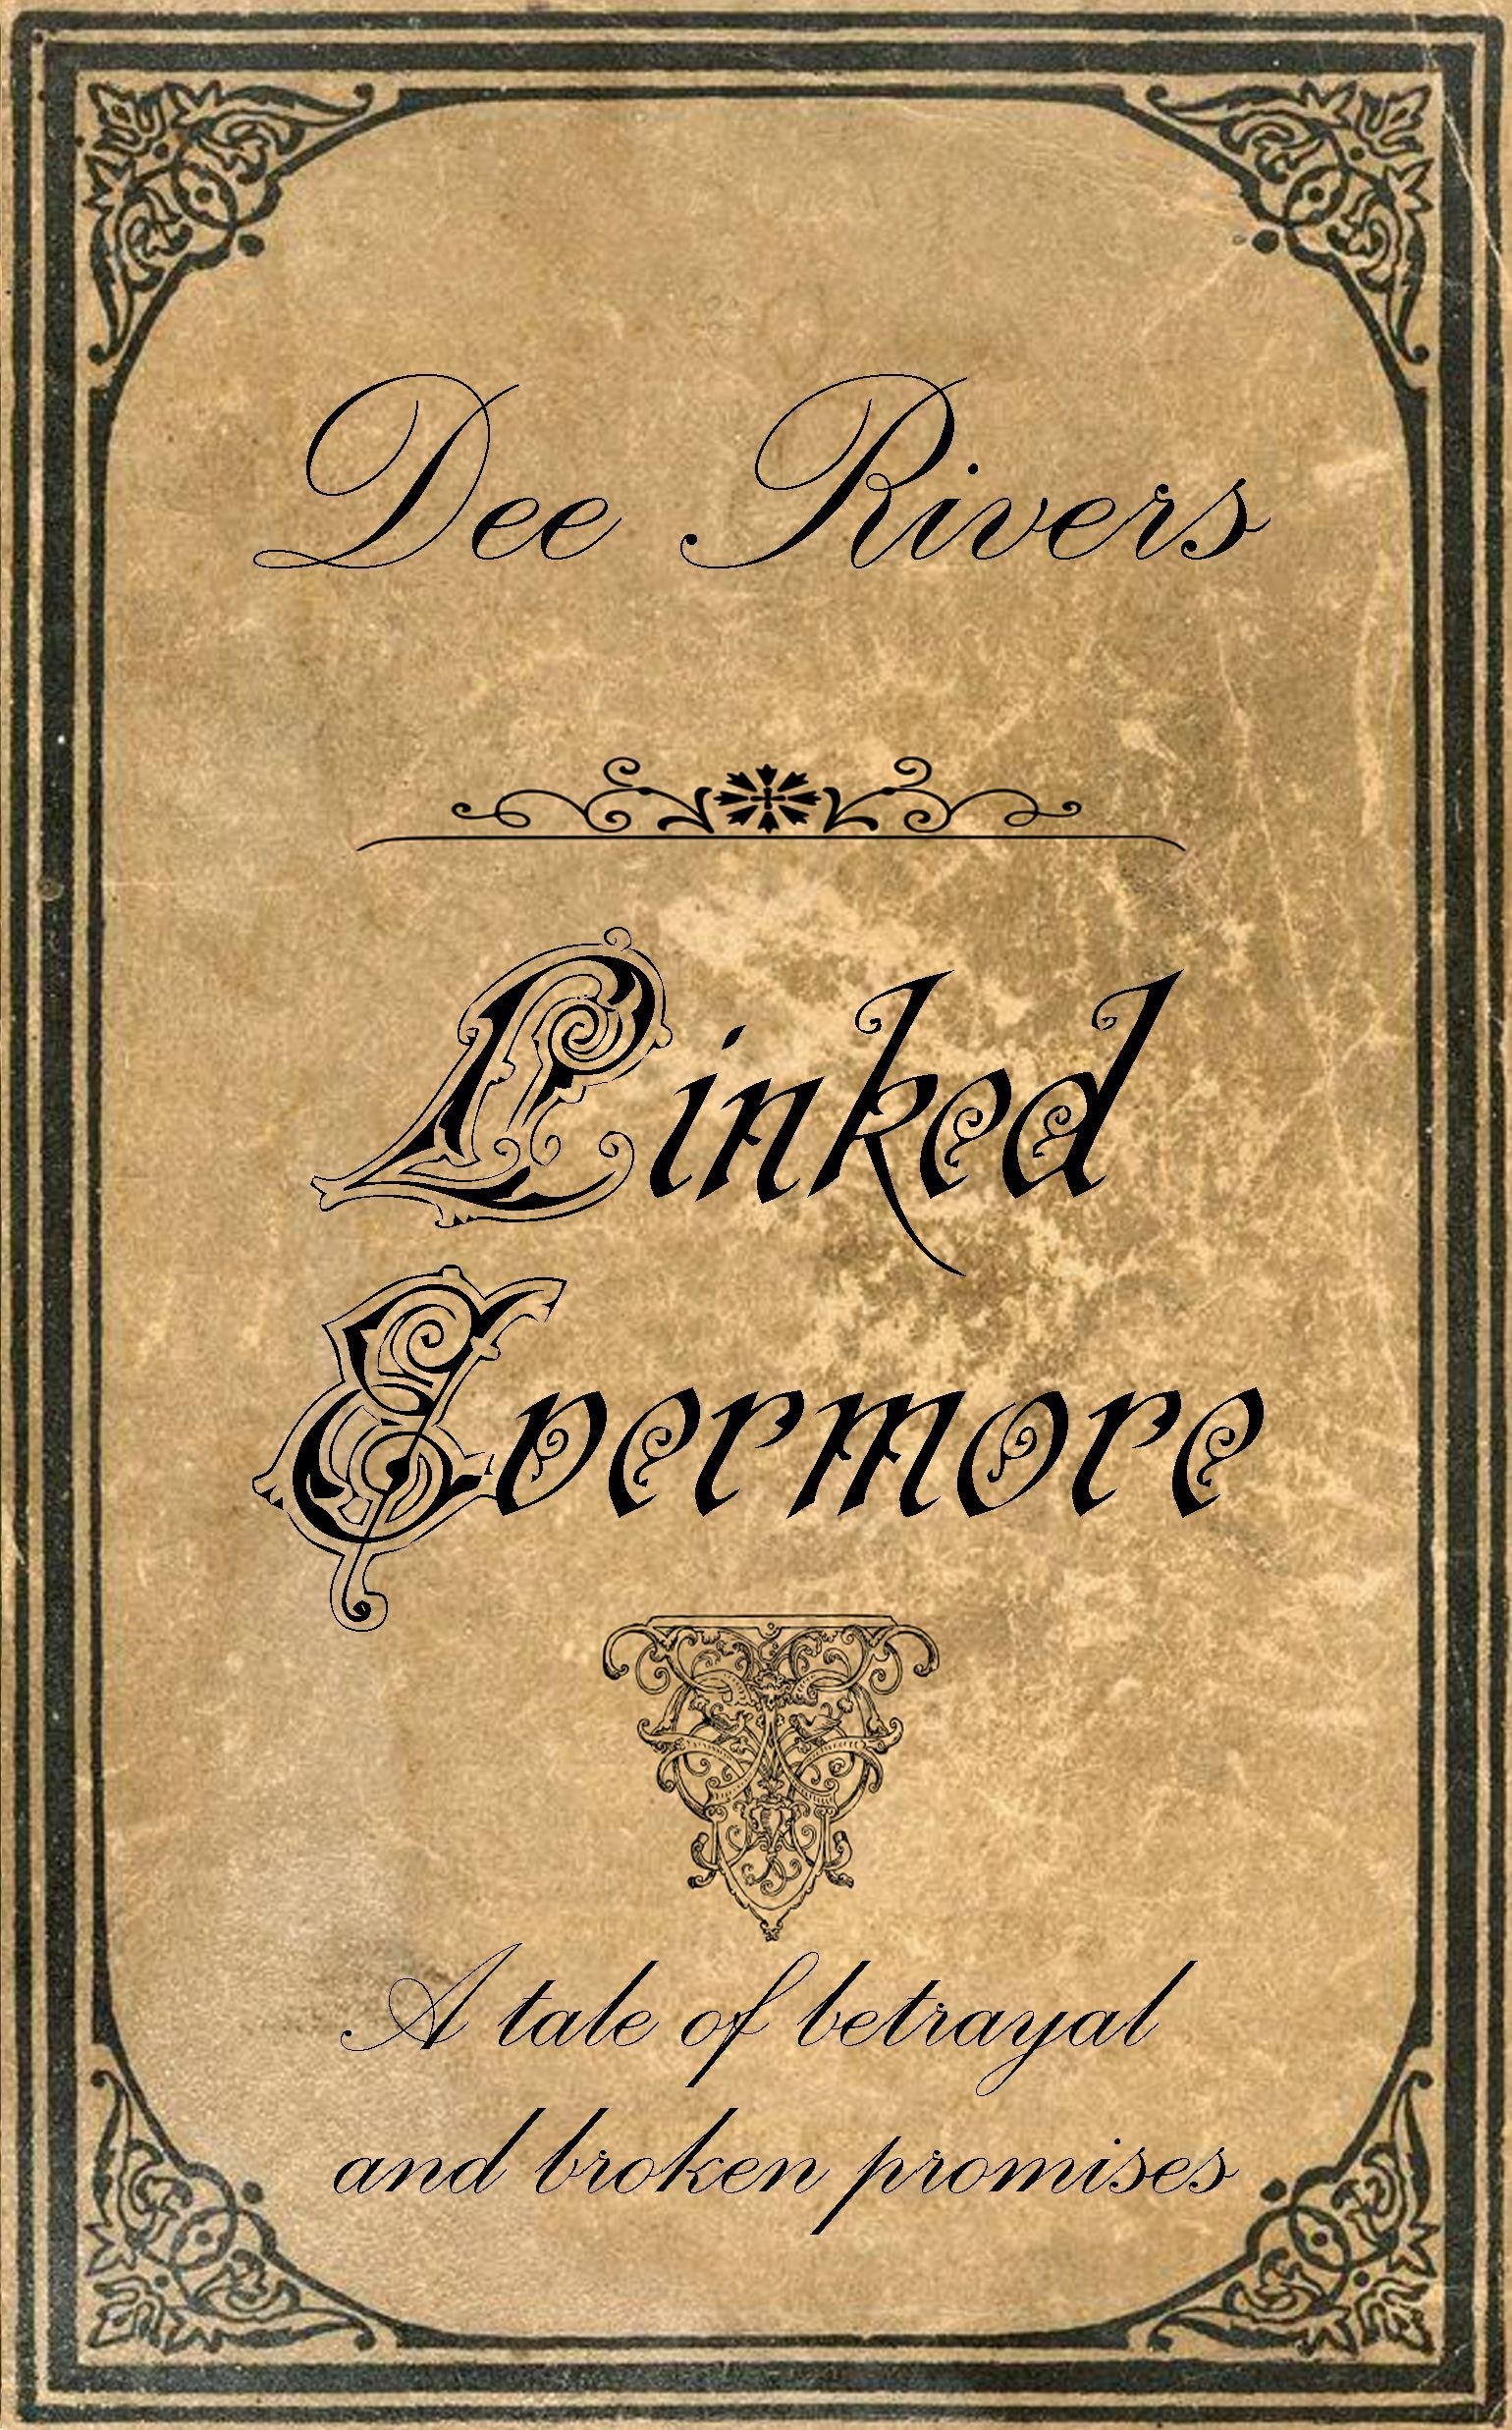 Linked Evermore